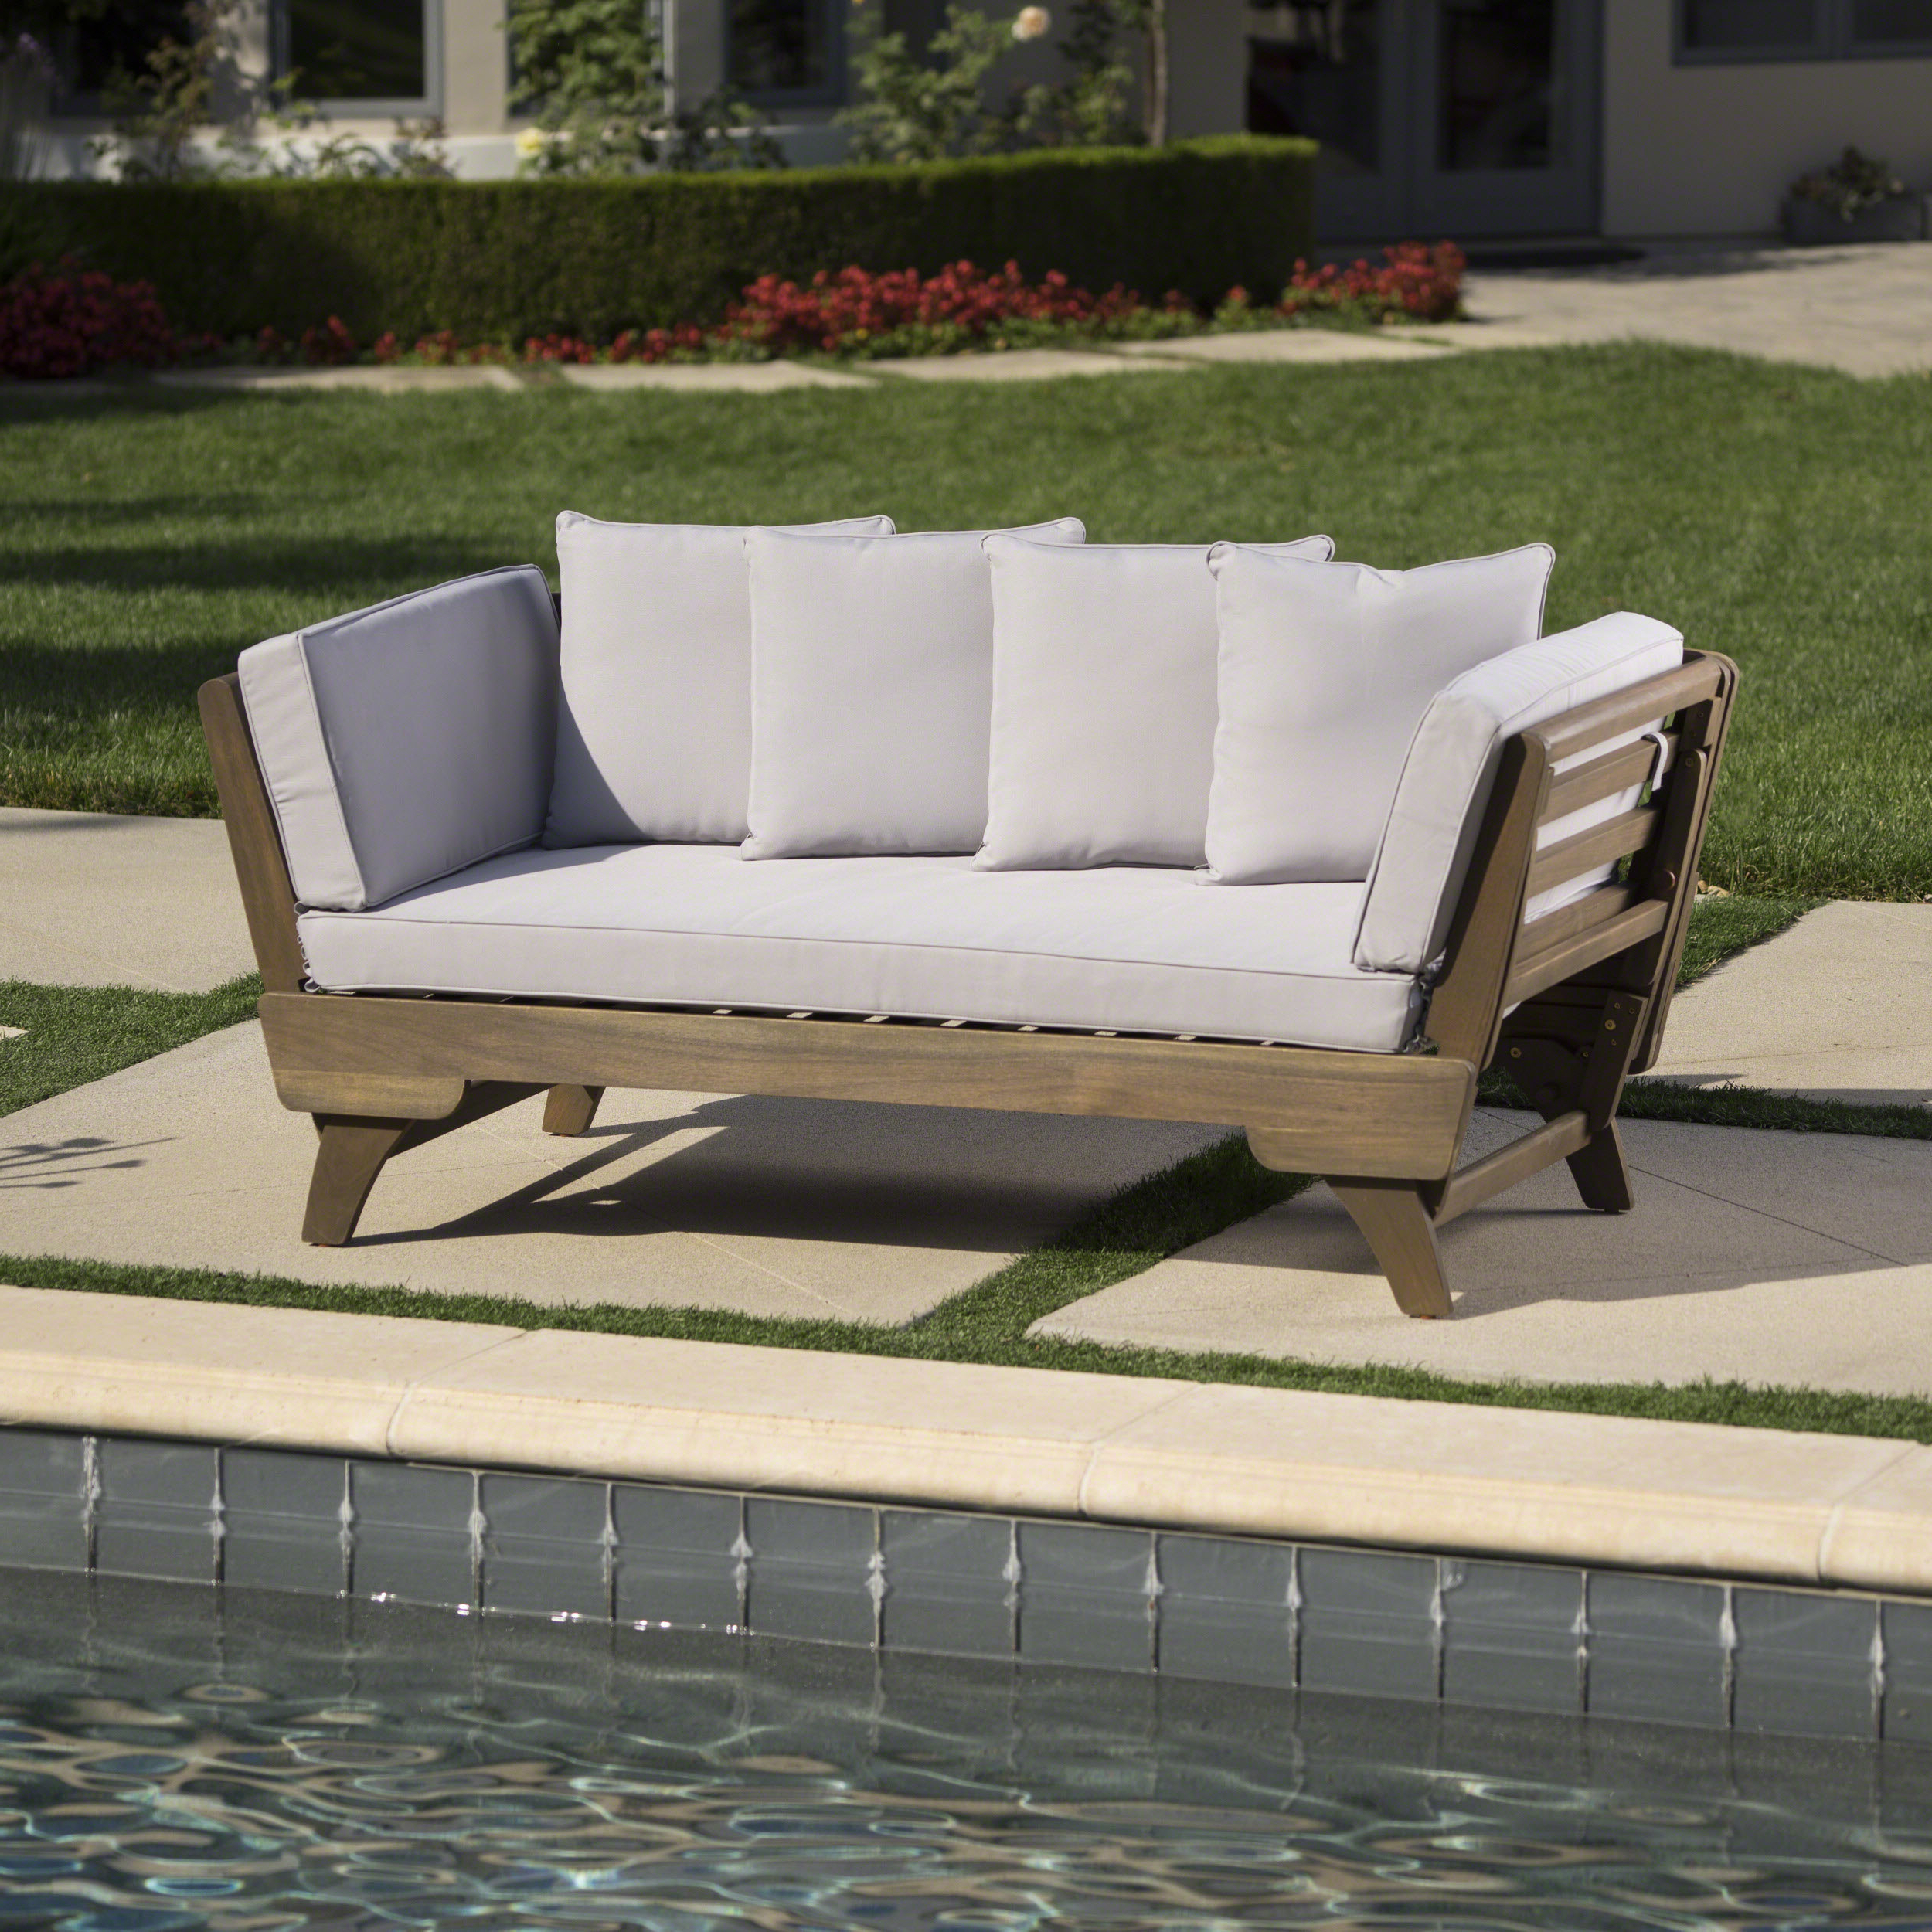 Falmouth Patio Daybeds With Cushions Within Favorite Ellanti Teak Patio Daybed With Cushions (View 17 of 20)